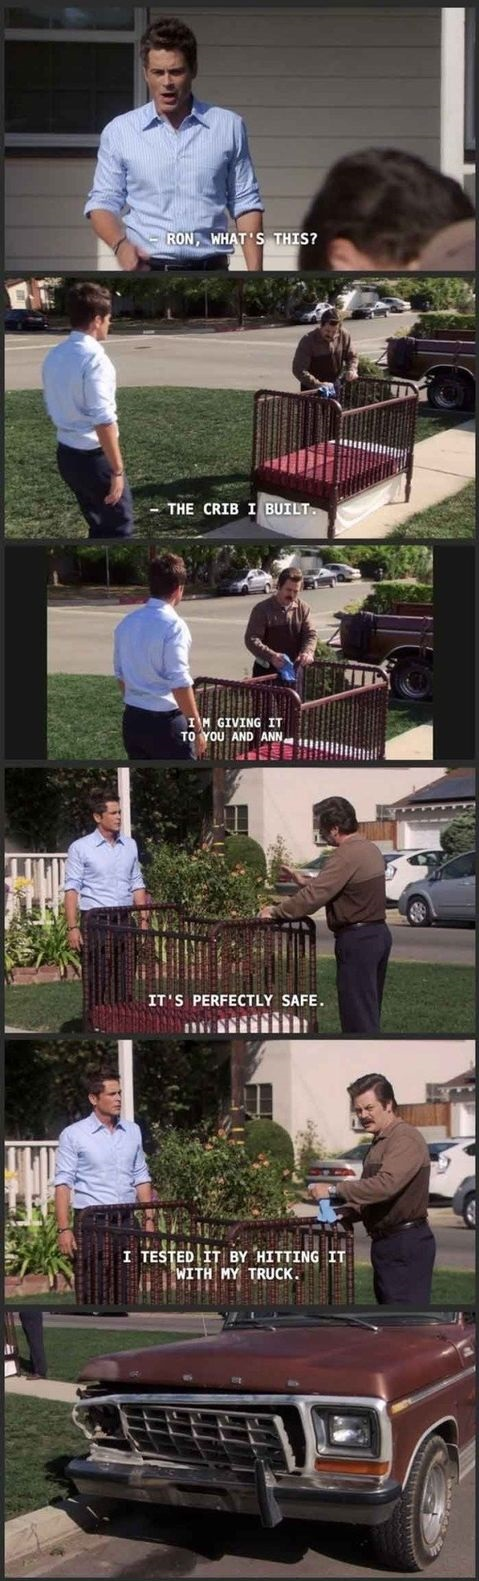 swanson-crib-test-parks-and-rec